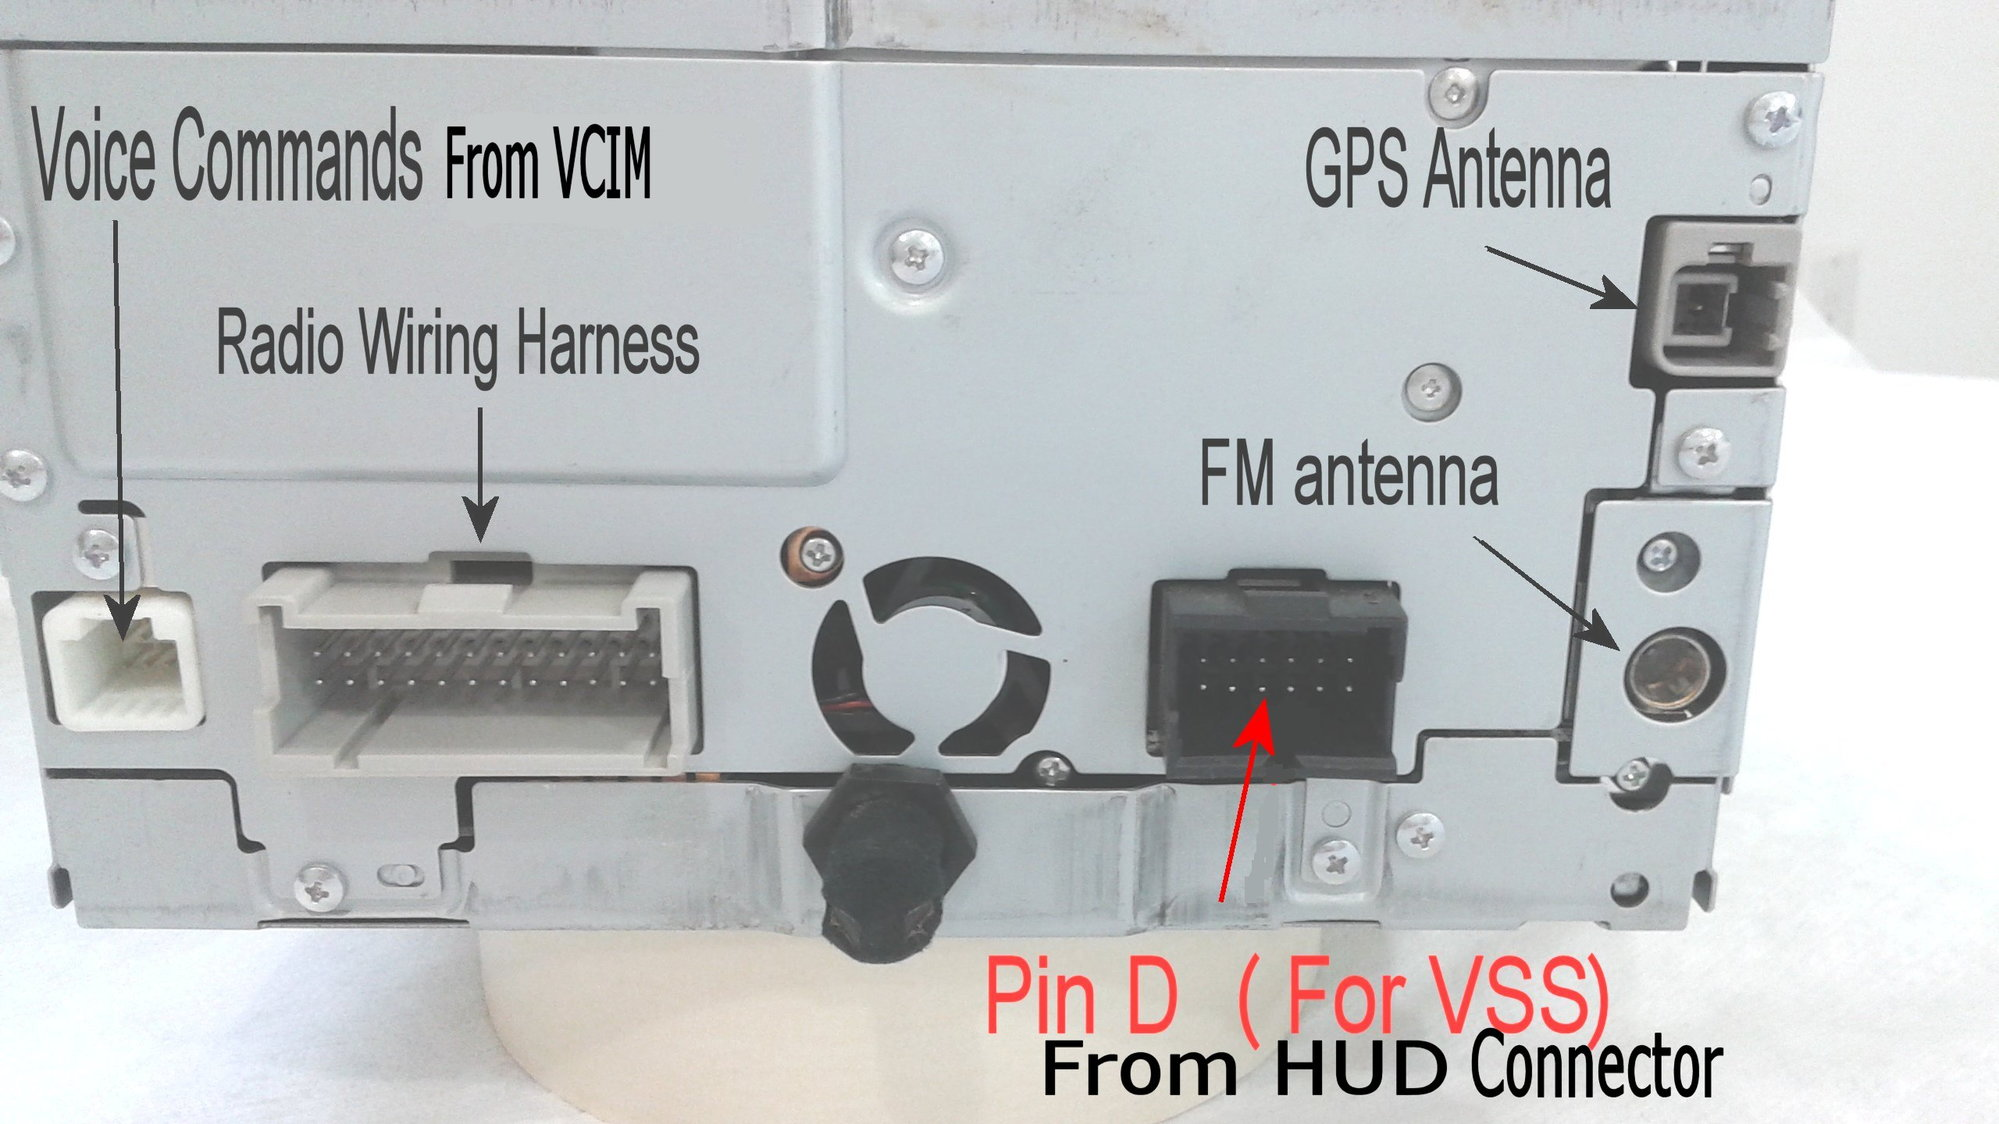 How Do You Install A Oem Navigation Unit In C6 With Bose Radio Onstar Wiring Harness The Voice Command Comes From Vcim Module And That Connector Should Also Be Tucked Back Of Surround Console